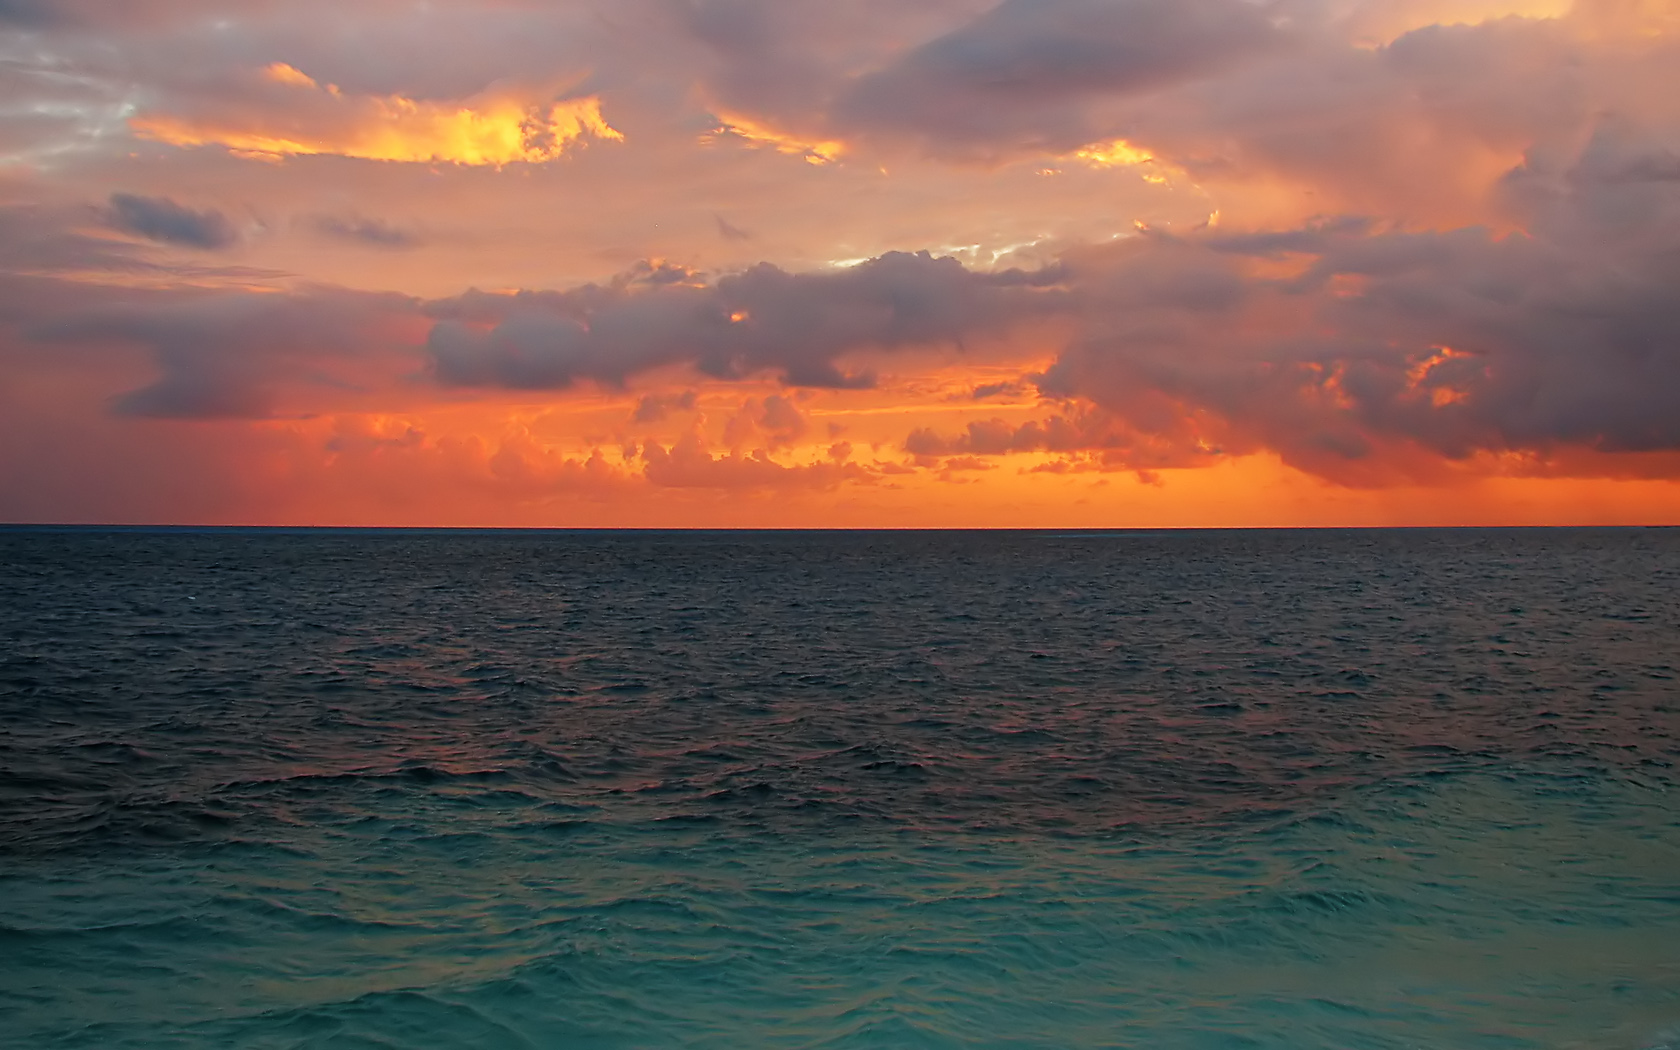 Free 3d Widescreen Wallpapers For Pc In The Middle Ocean Wallpapers In The Middle Ocean Stock